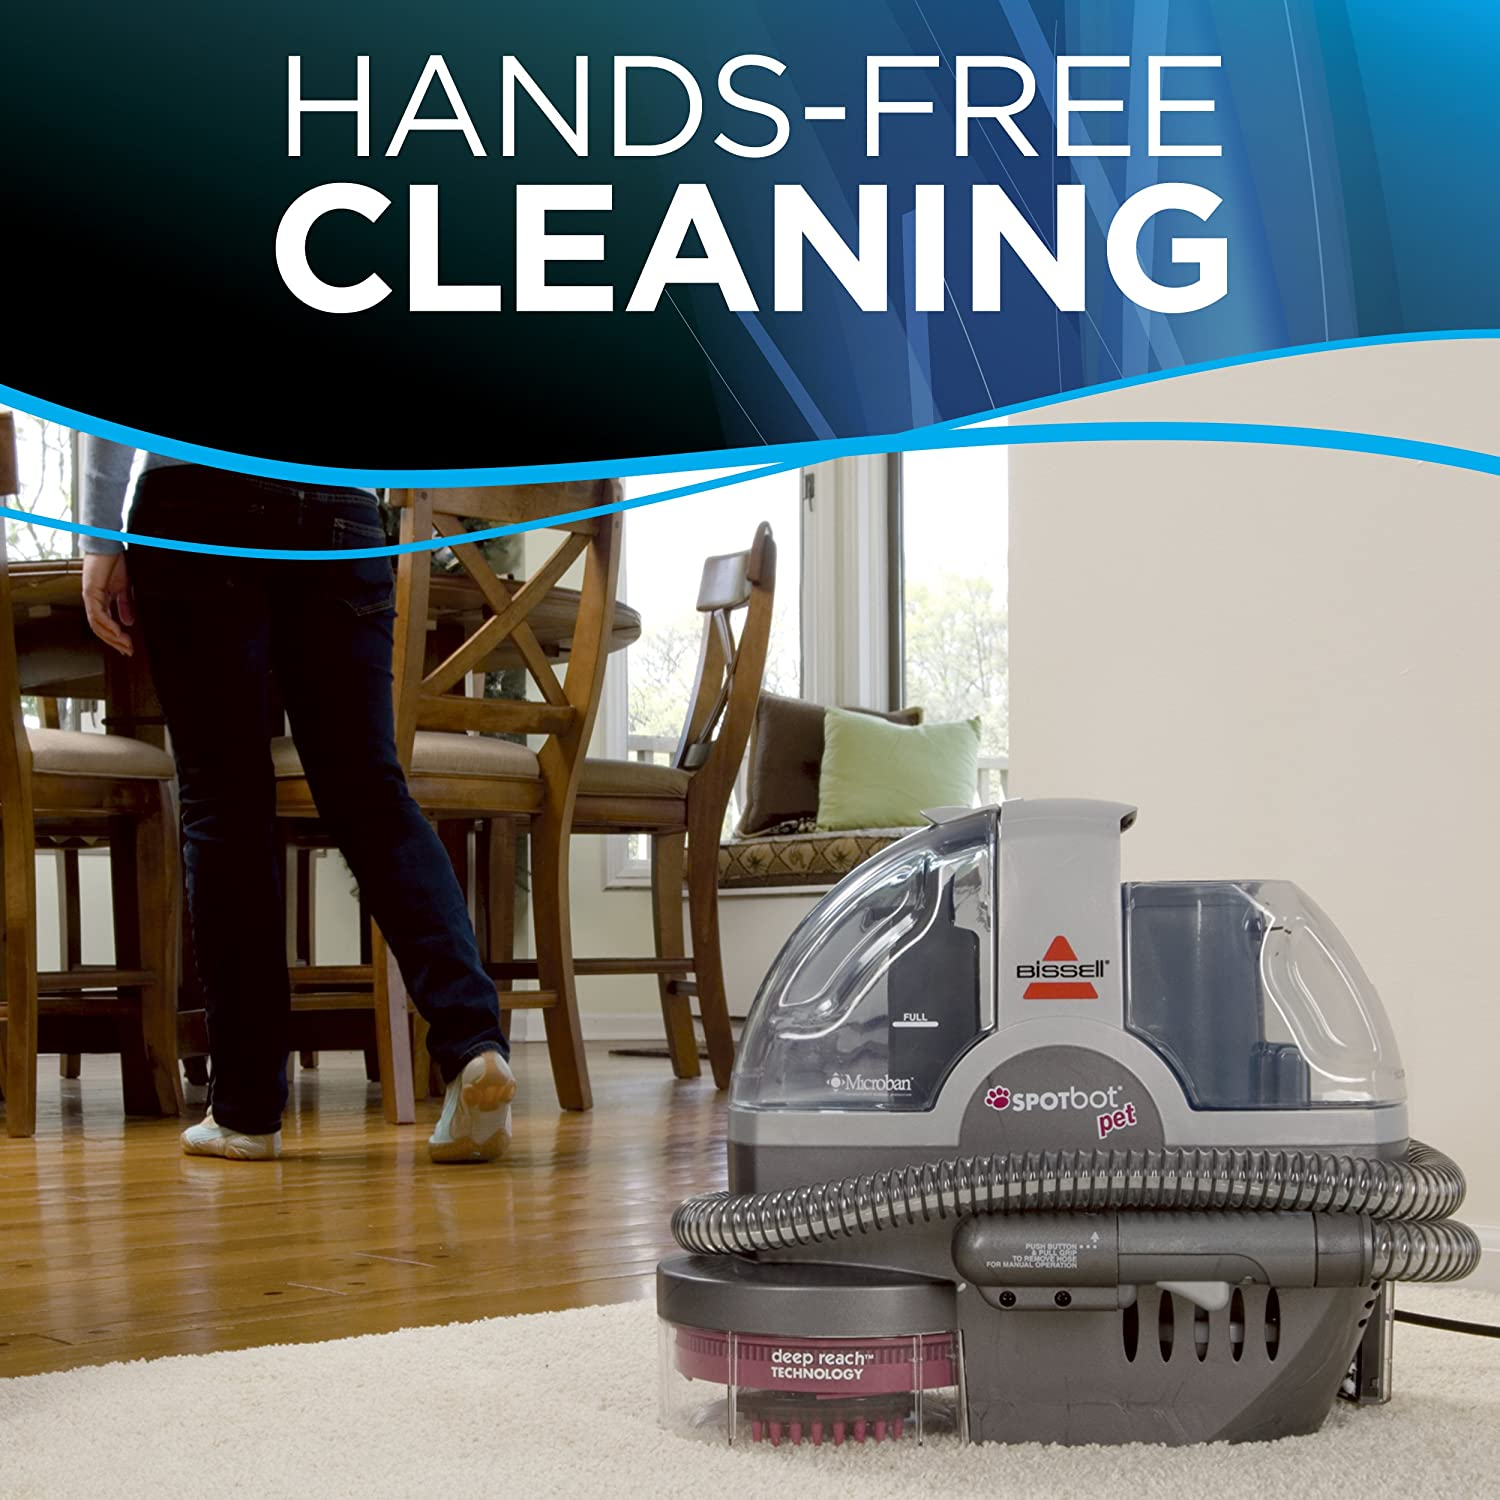 SpotBot Pet handsfree Spot and Stain Cleaner with Deep Reach Technology 33N8A